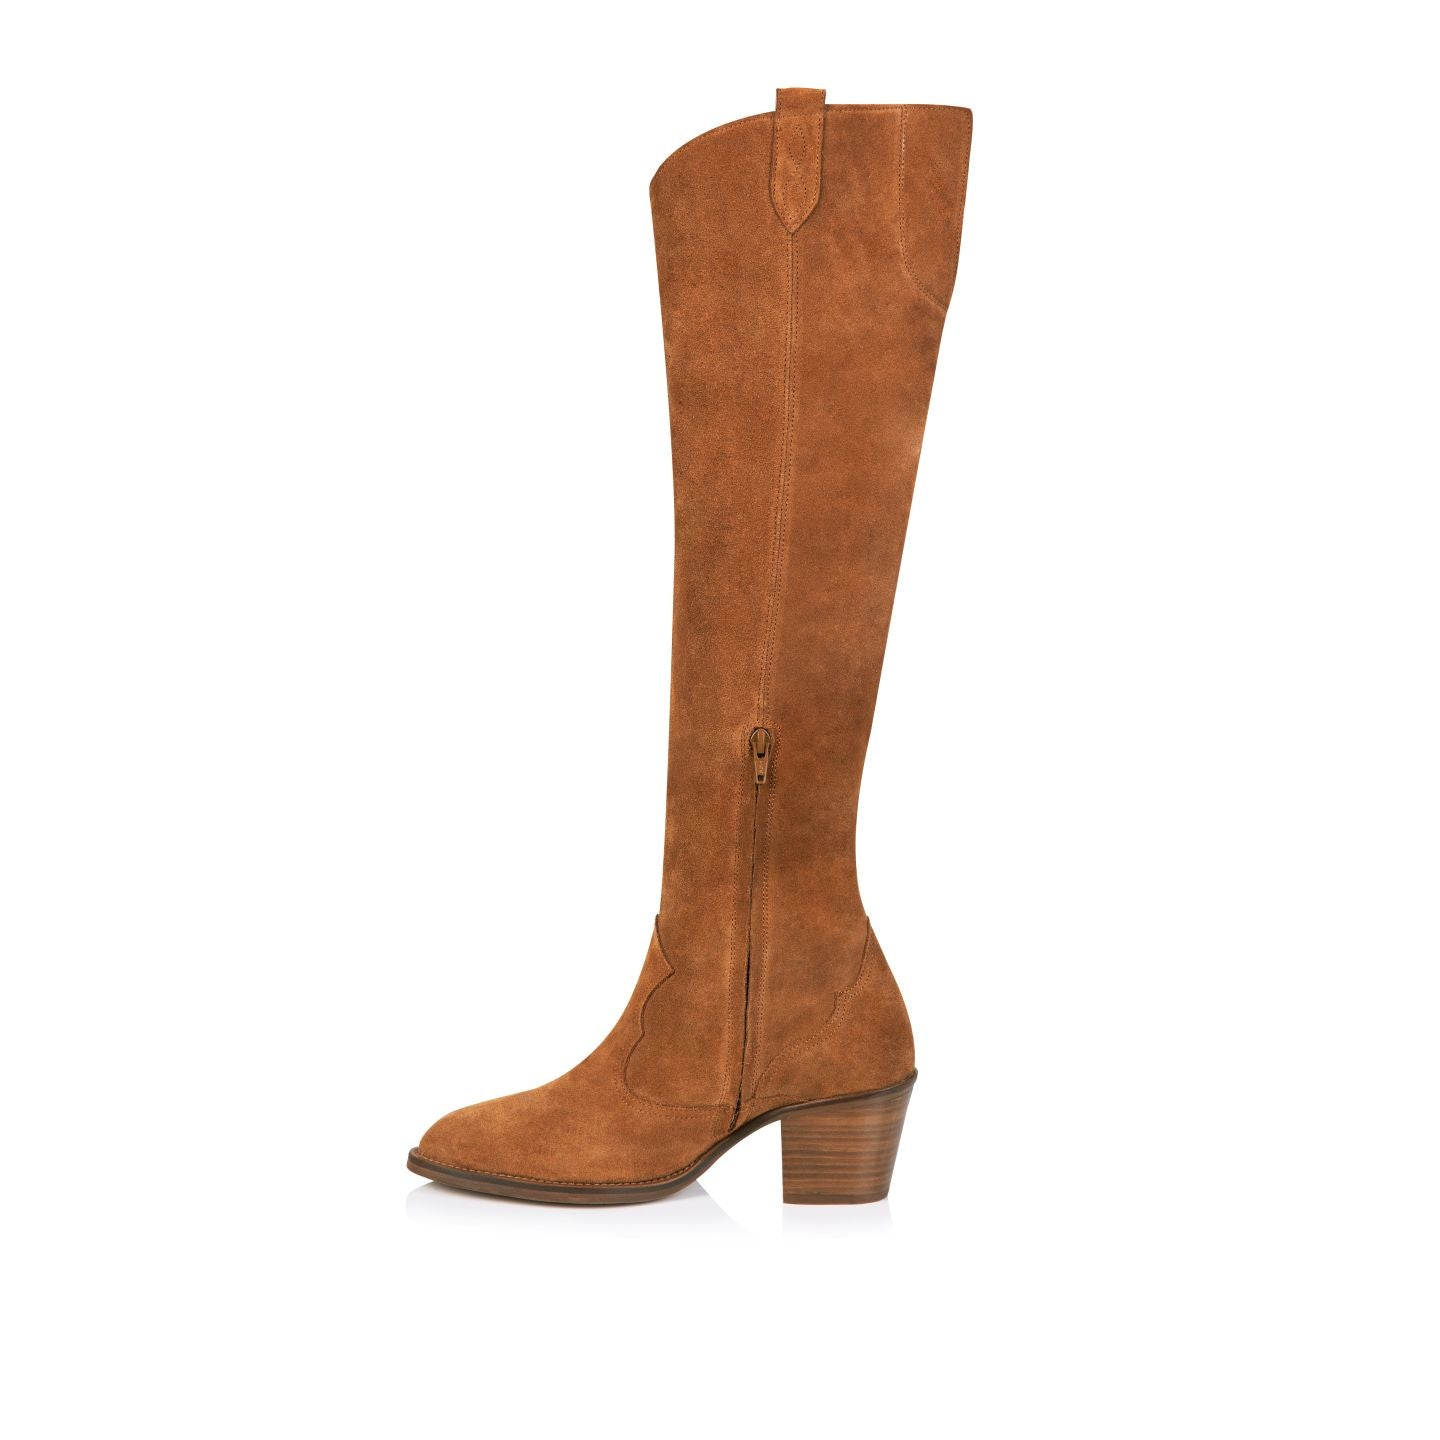 HUTTON: TAN SUEDE KNEE HIGH BOOTS - (SLIM FIT)